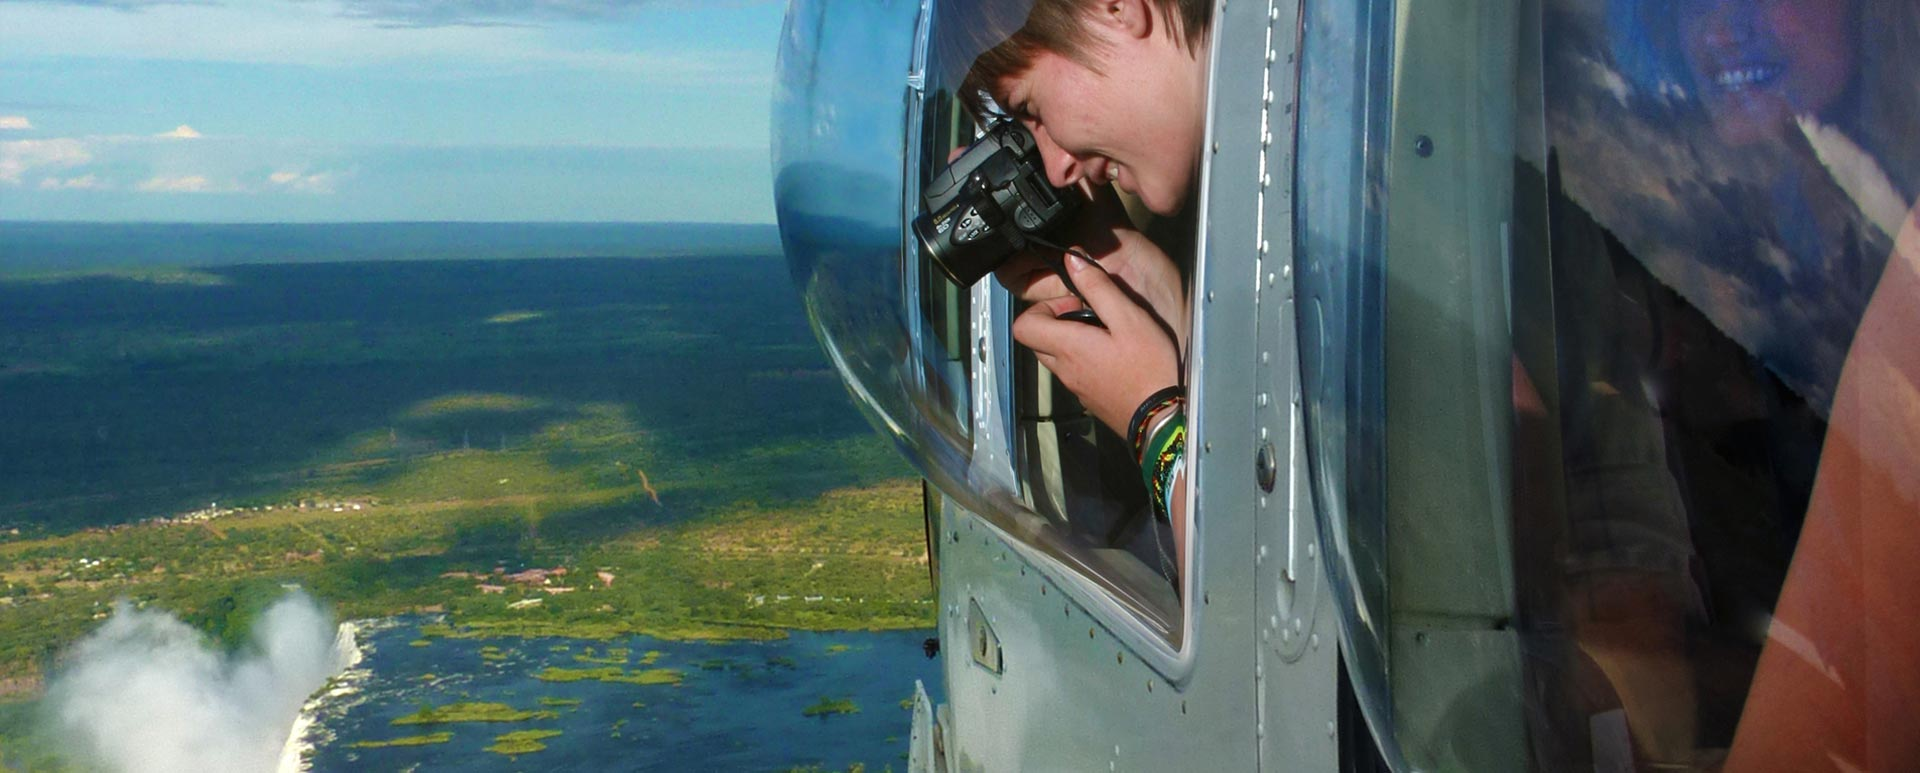 Helicopter Window